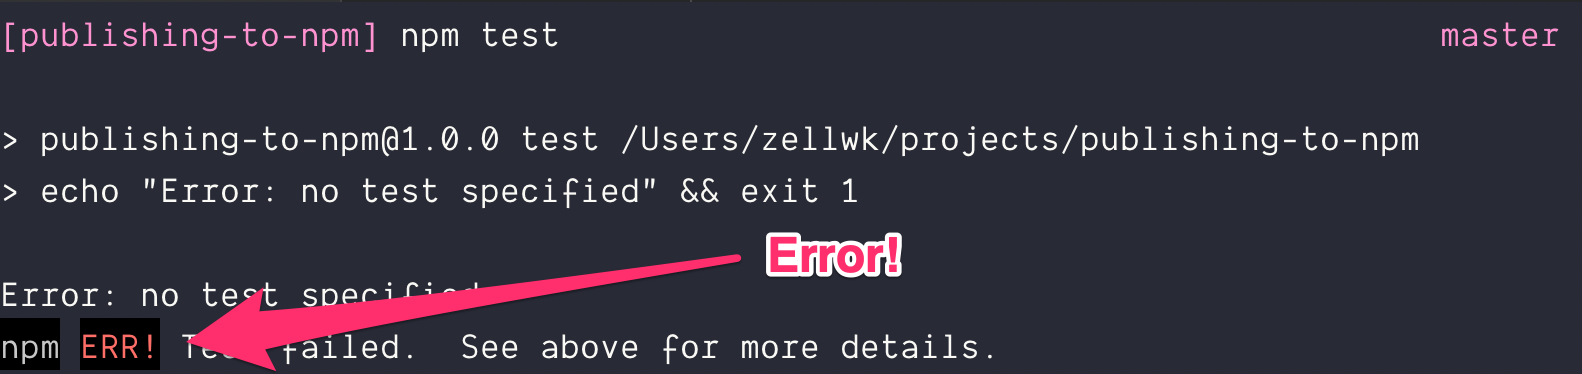 npm test results in an error